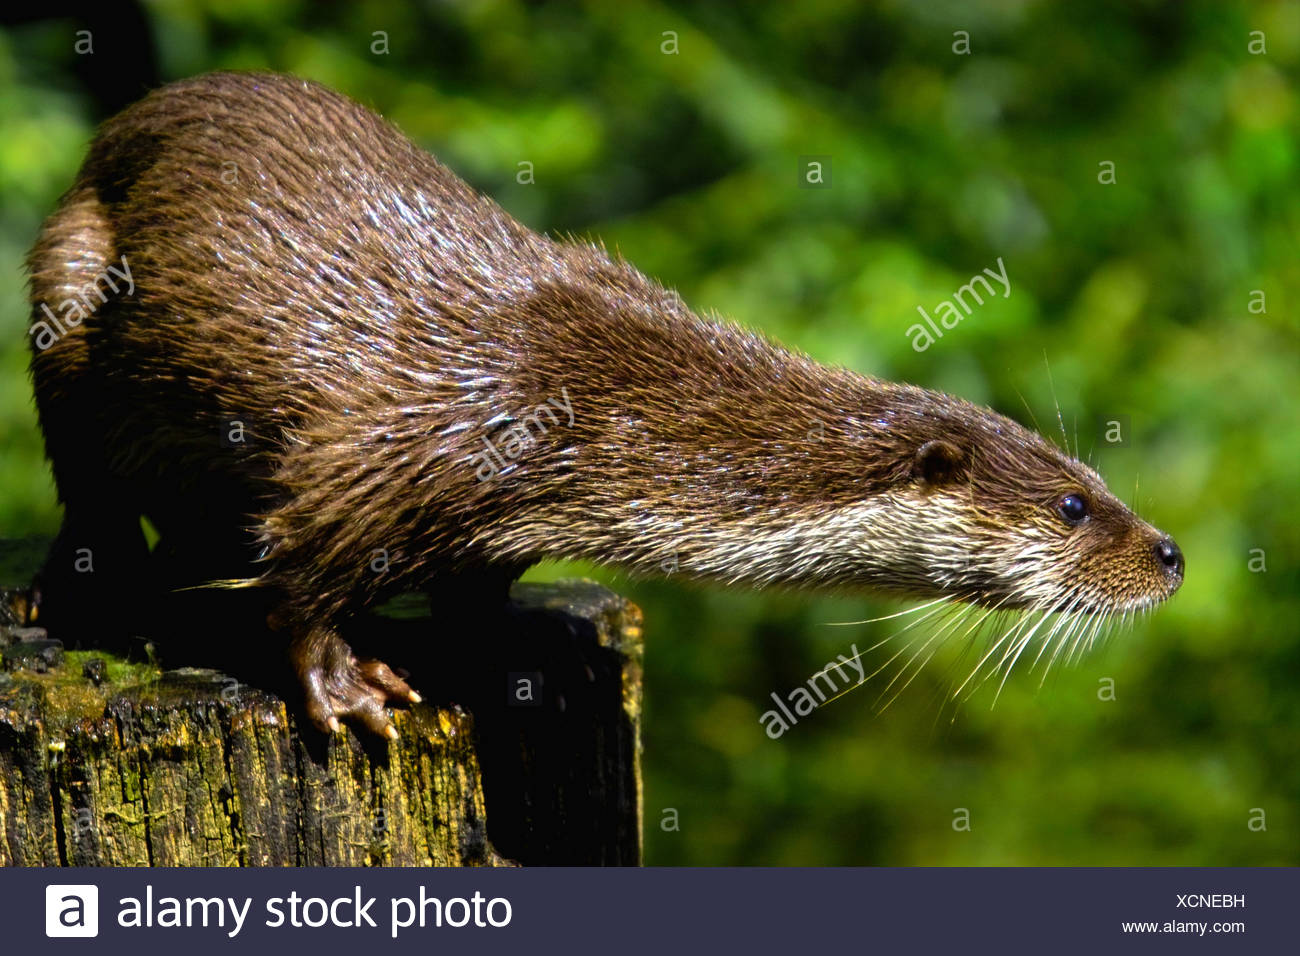 Close-up of River Otter (Lutra Lutra) on tree stump - Stock Image